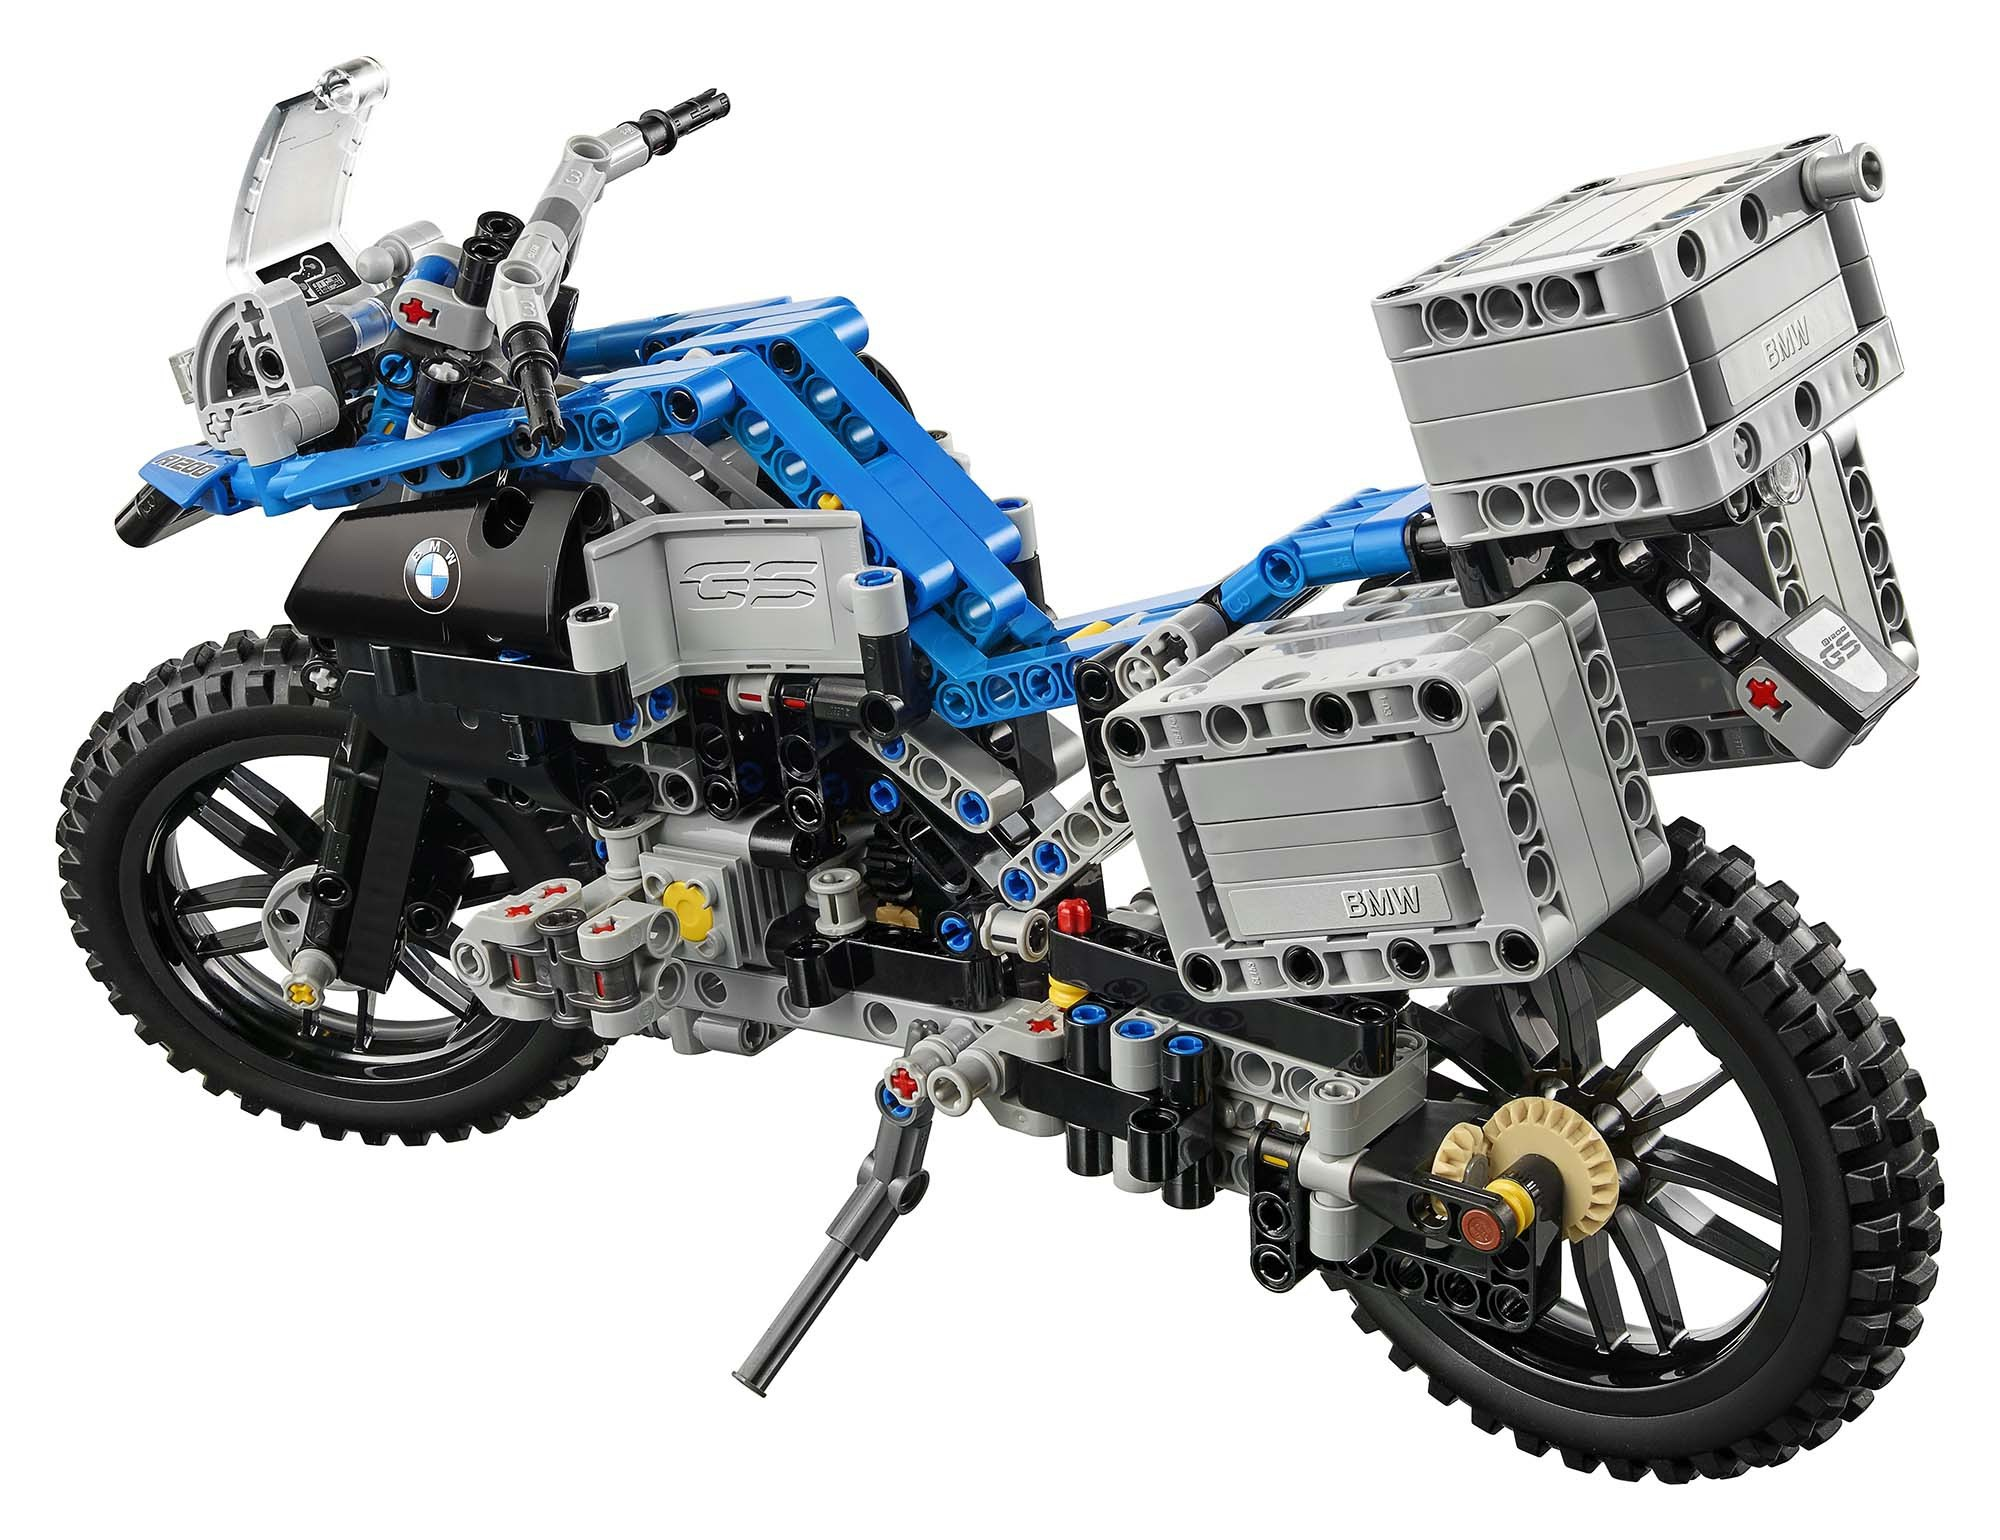 Foto de BMW R 1200 GS Adventure LEGO (11/13)